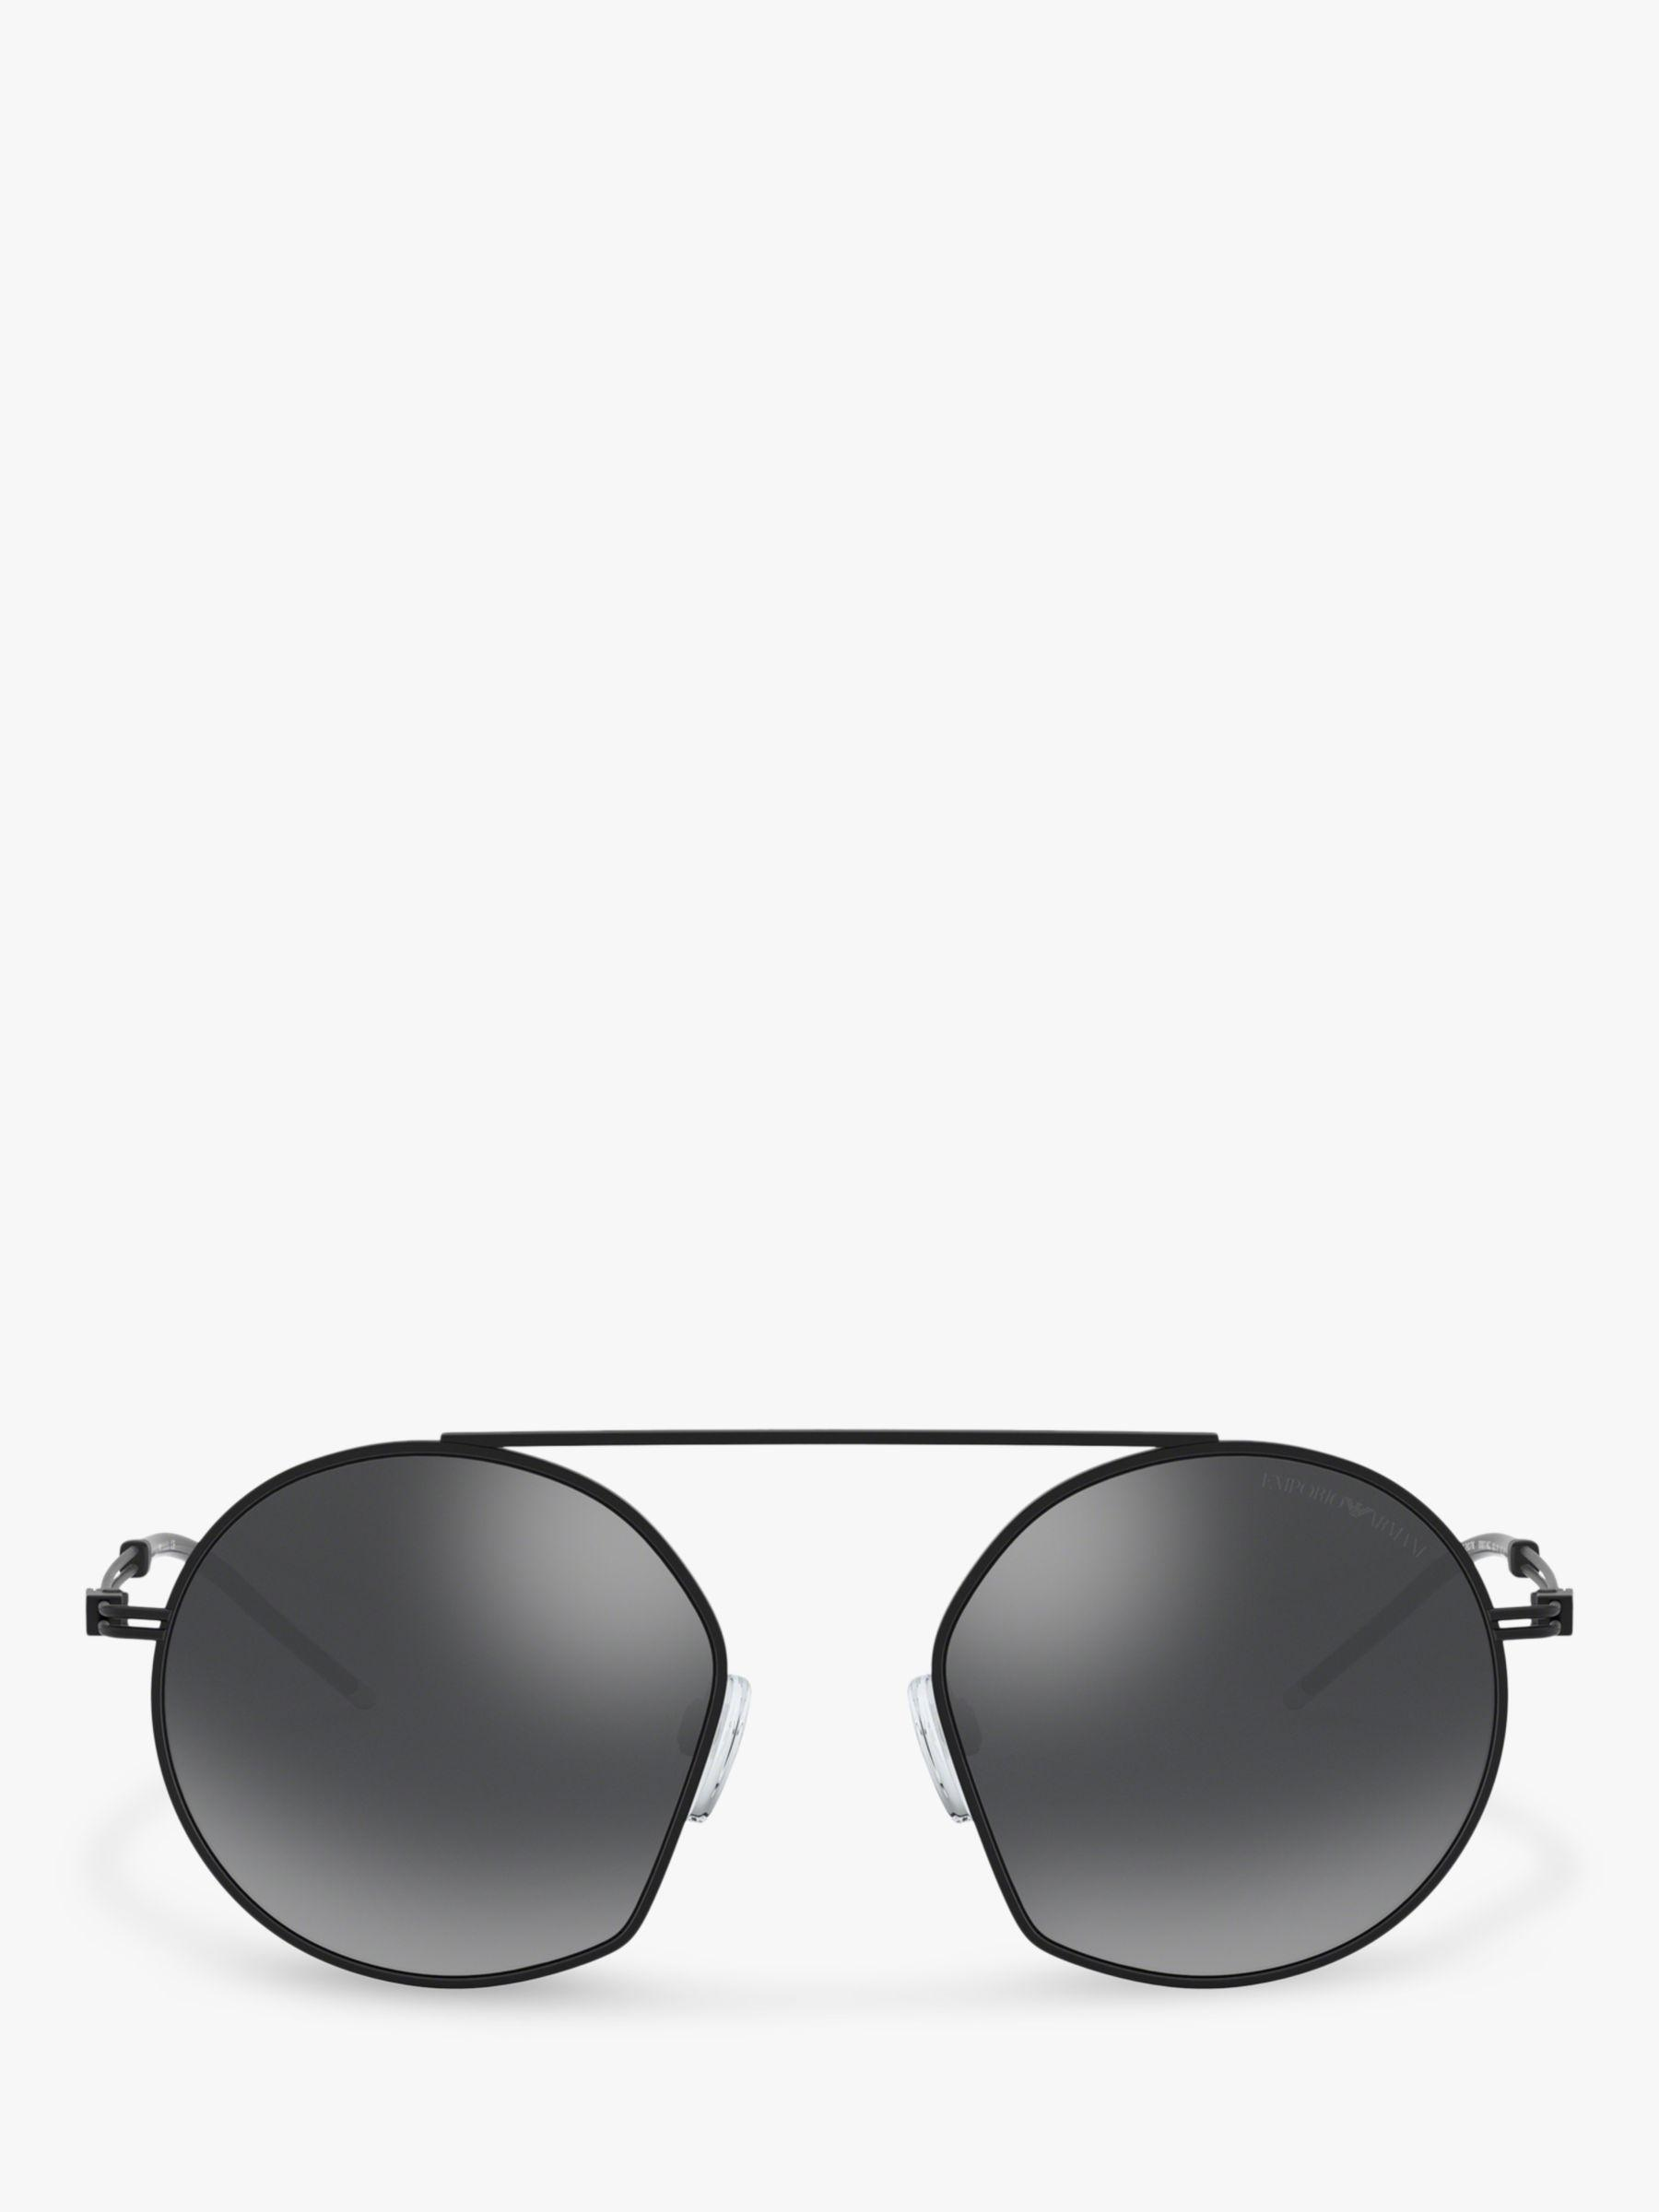 41a0c47a0b6b4 Emporio Armani - Black Ea2078 Men s Asymmetric Round Sunglasses for Men -  Lyst. View fullscreen